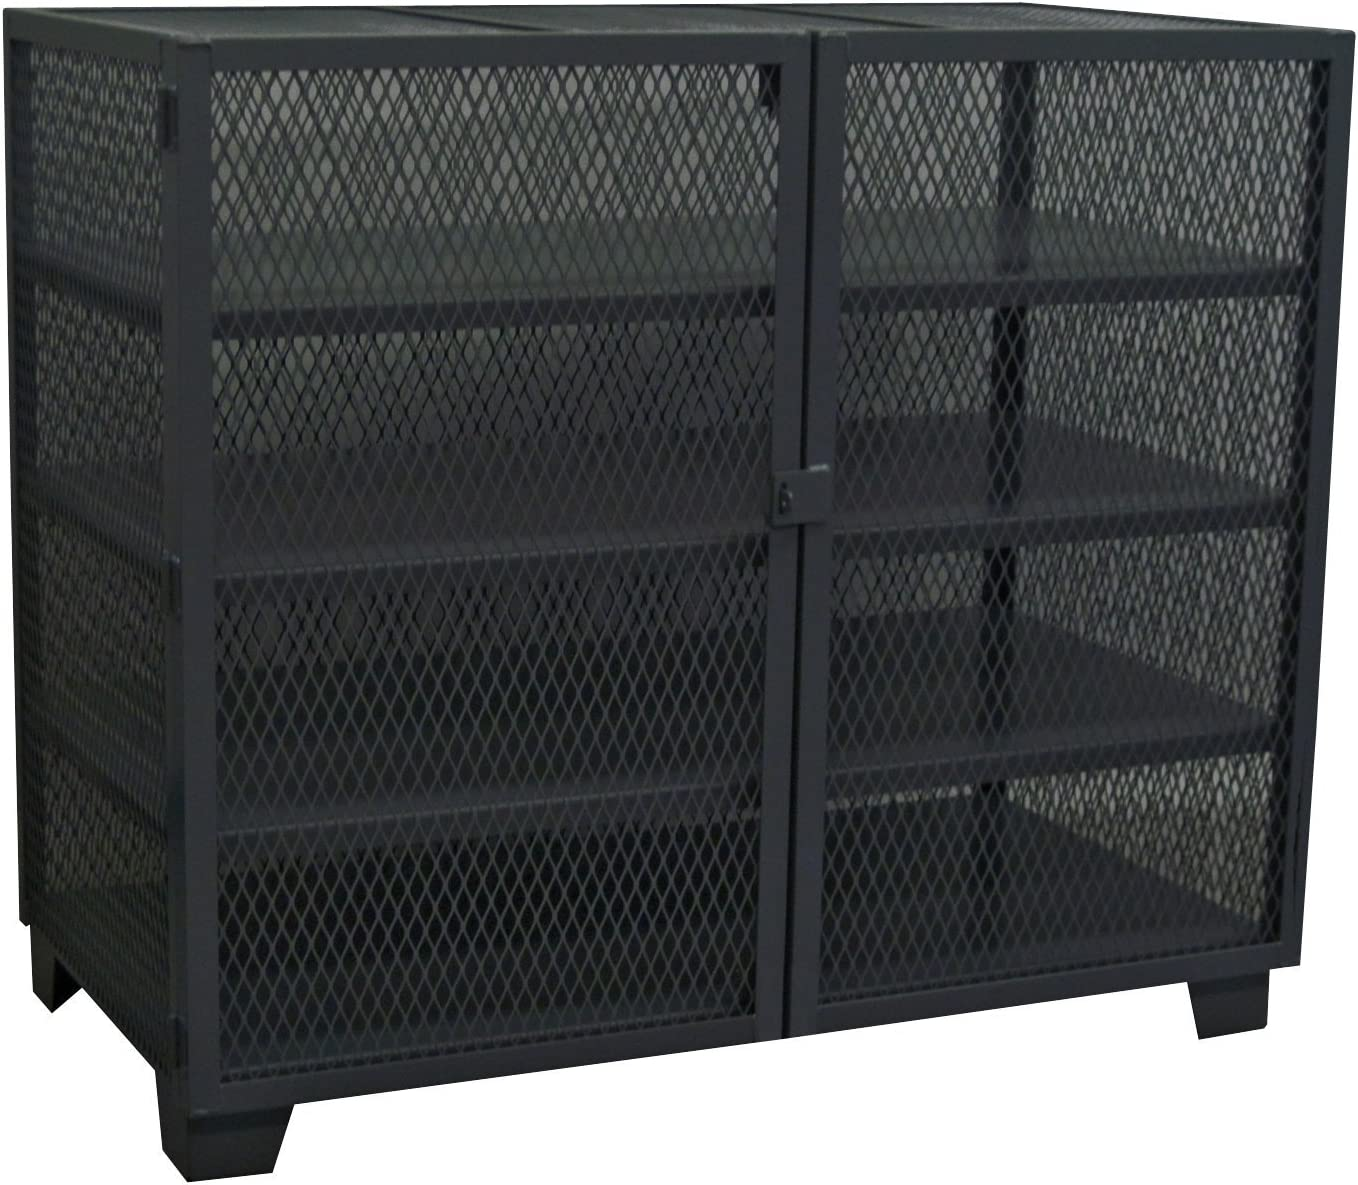 Jamco Products Limited price sale Inc MD448-BL Stationary Cabinet Mesh 36 Security Denver Mall